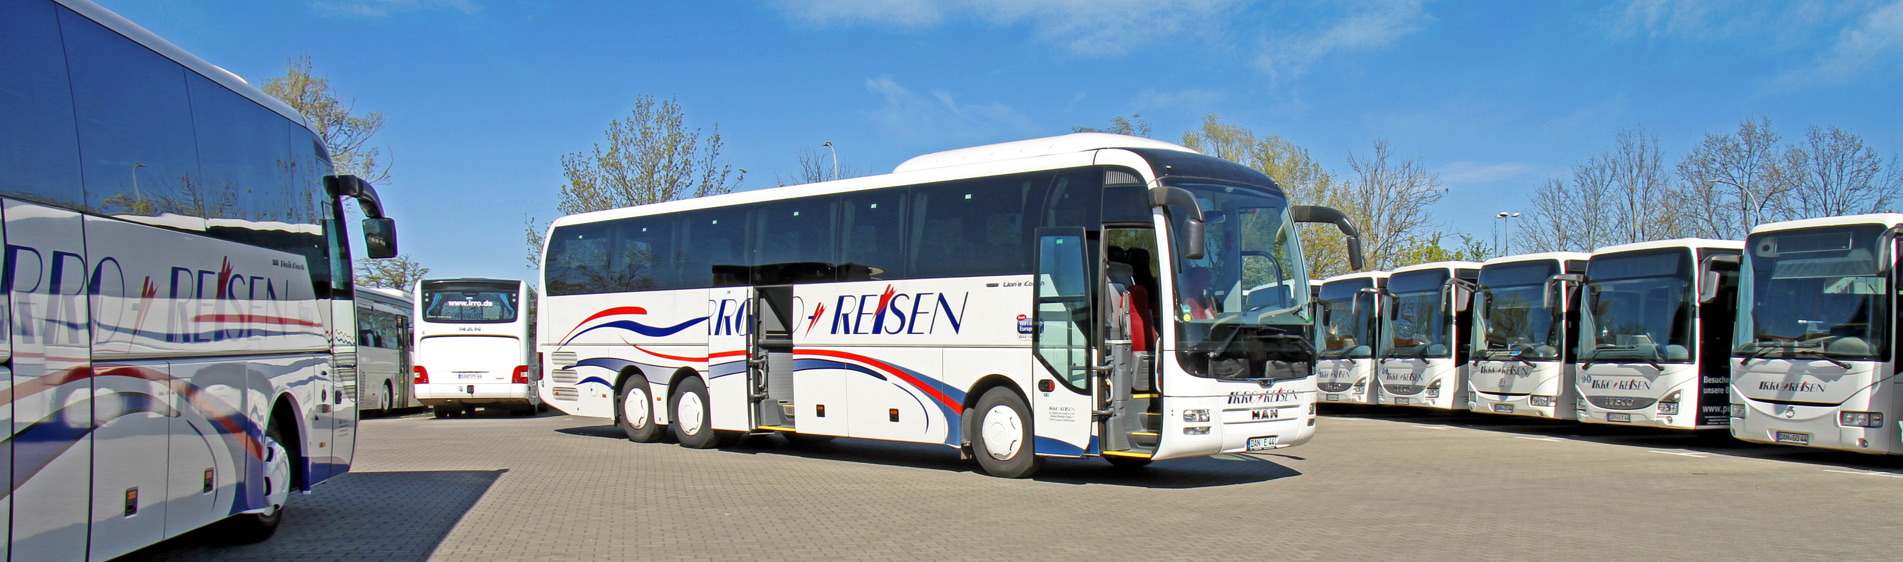 Mercedes Benz Tourino Coach Charter Bus Rental Germany And Europe